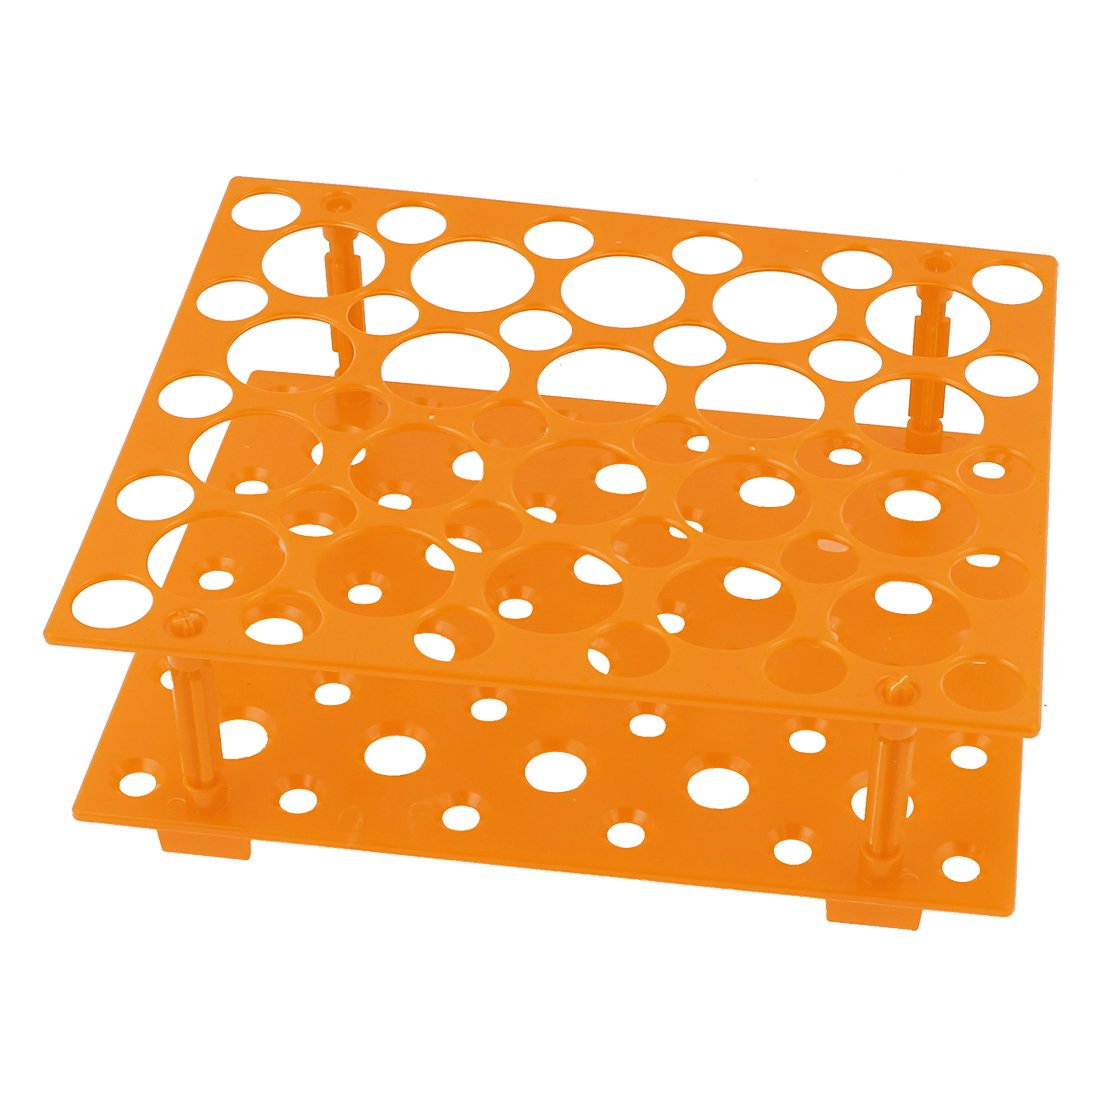 Laboratory Orange 50 Test Tubes 30mm 15mm Tubing Holder Stand Rack